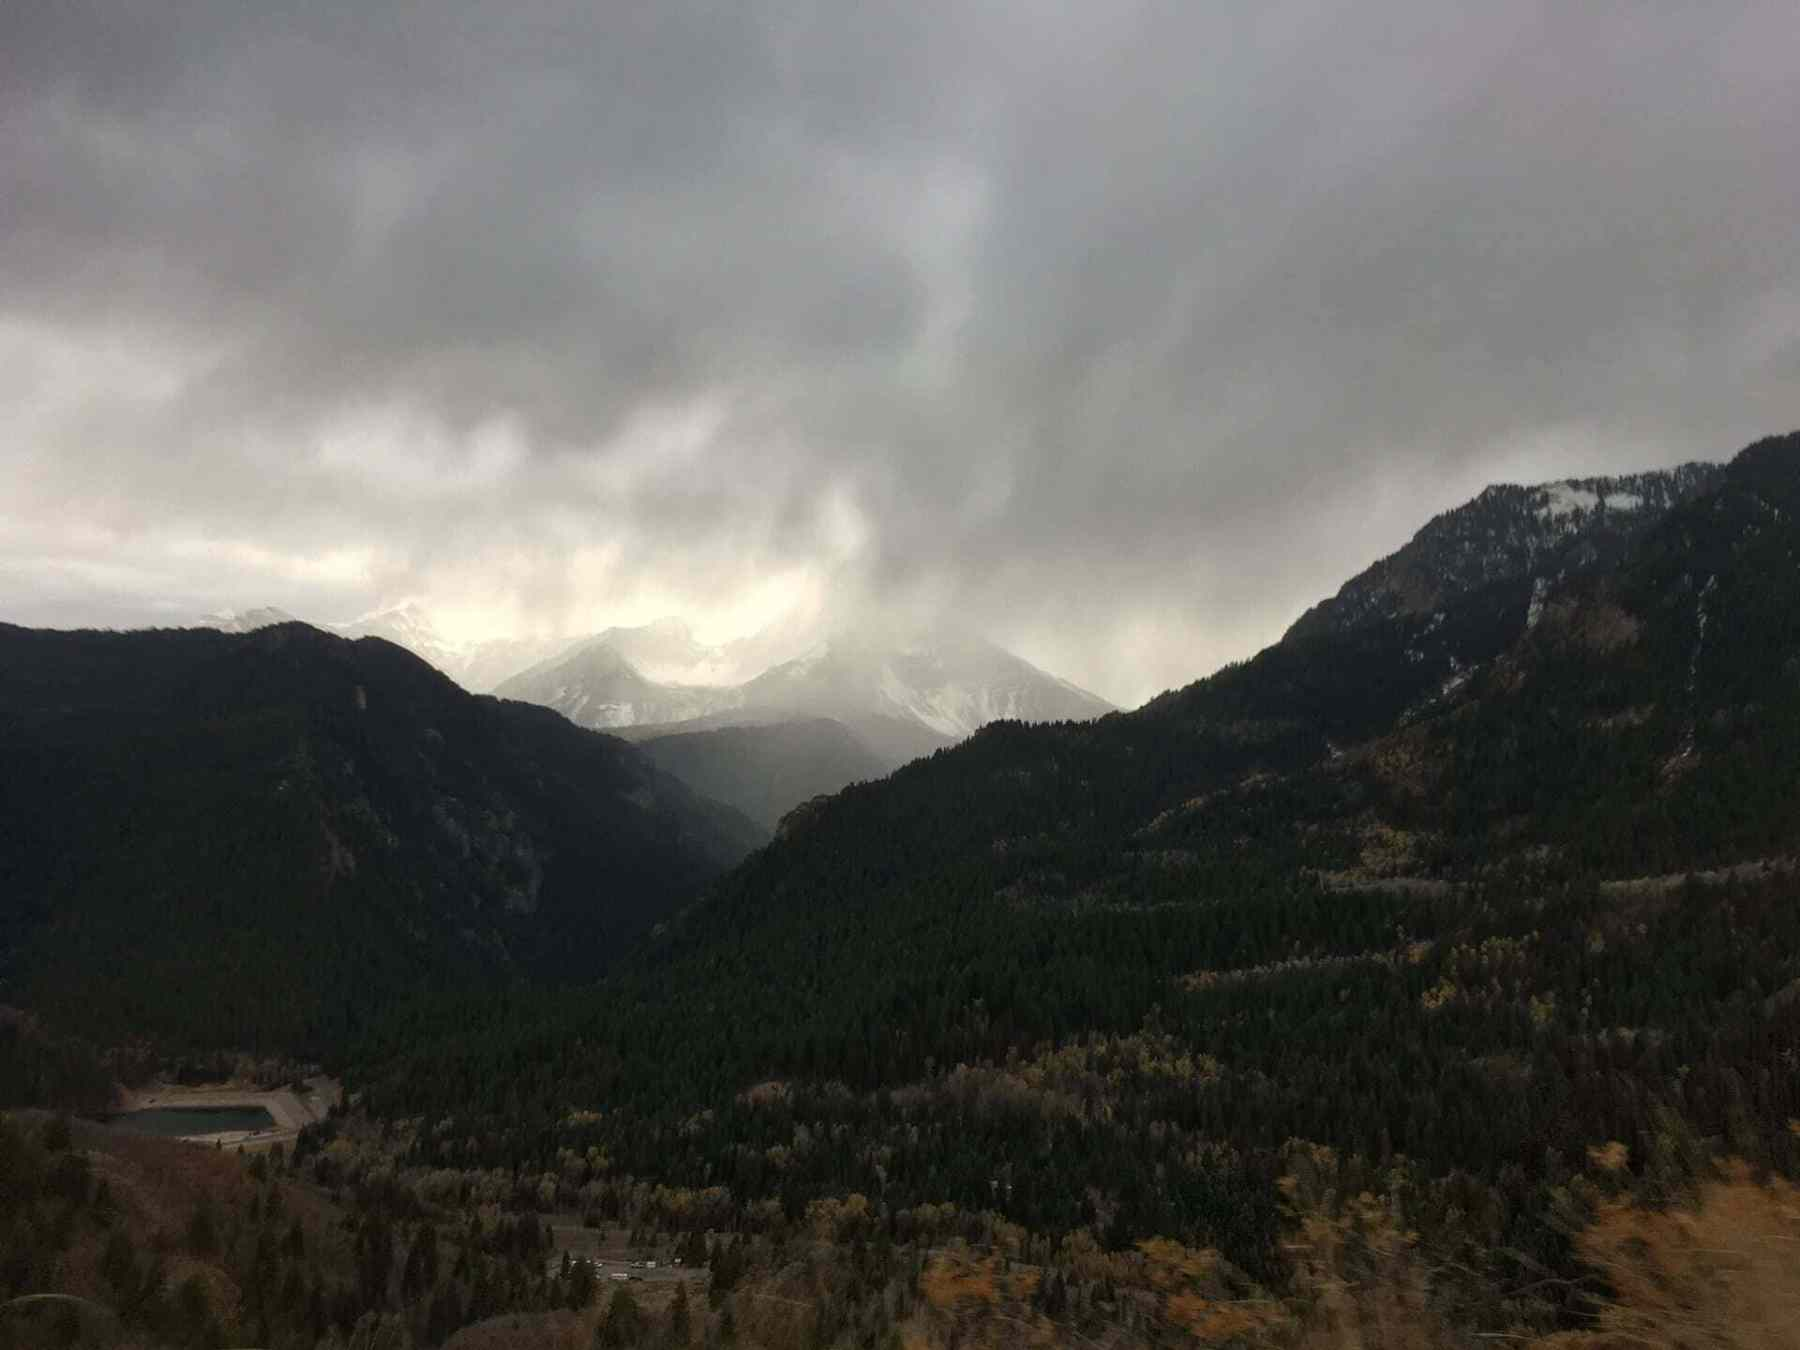 Storm moving in as we left, overlooking Tibble Fork Reservoir